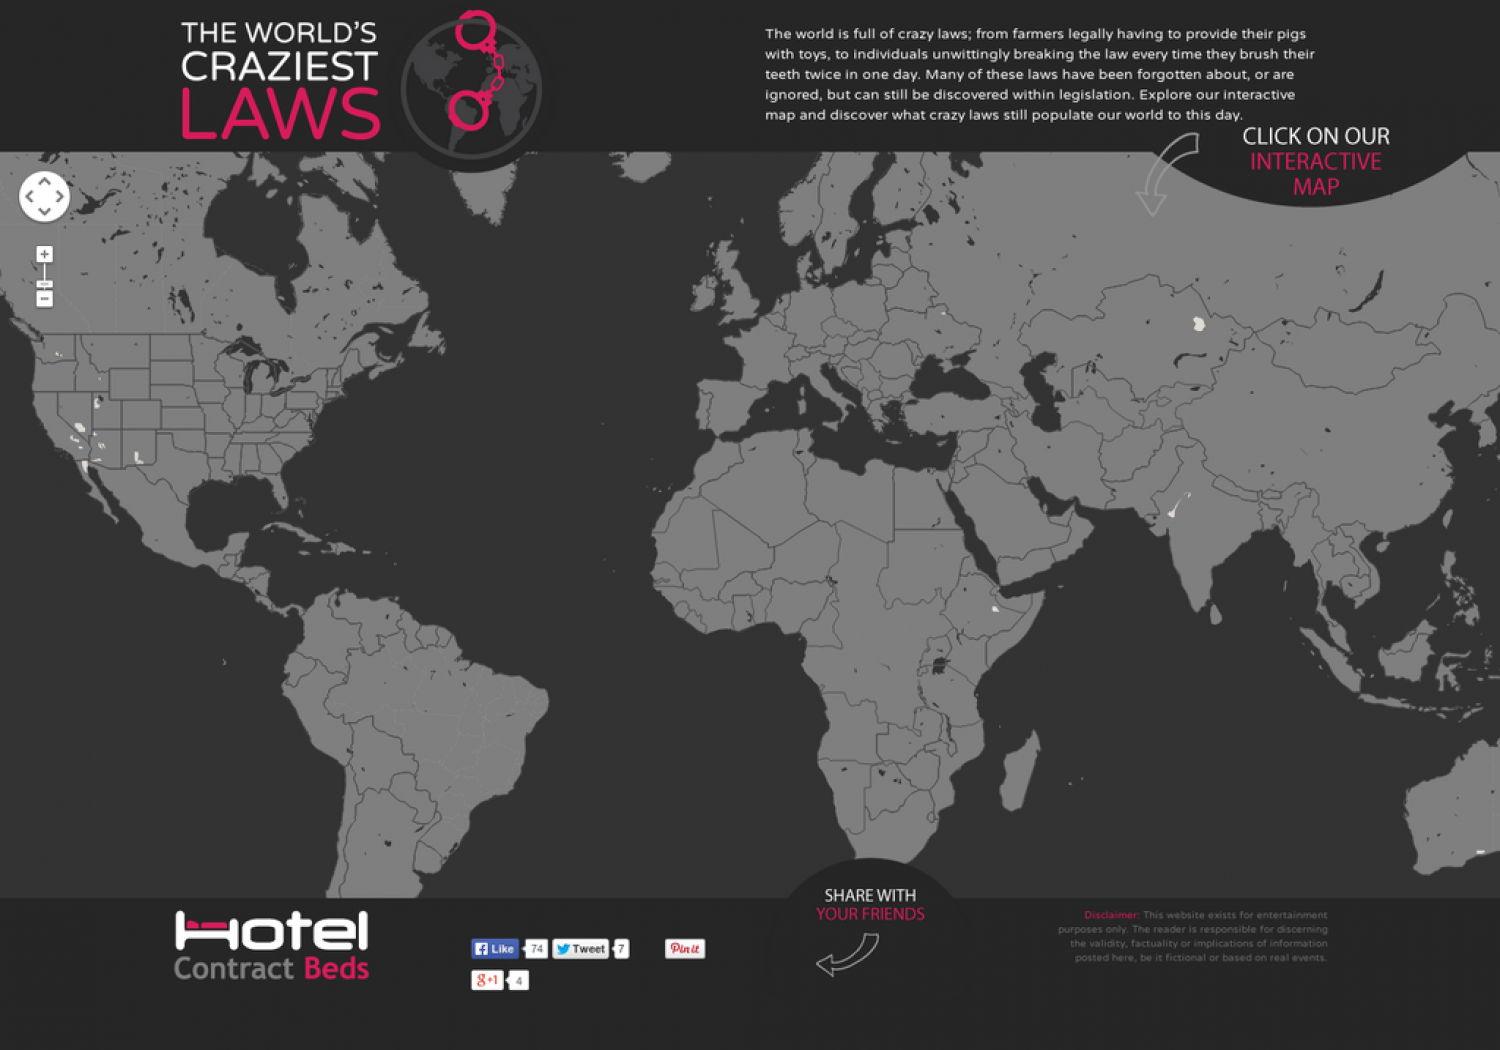 The World's Craziest Laws - An Interactive Map Infographic